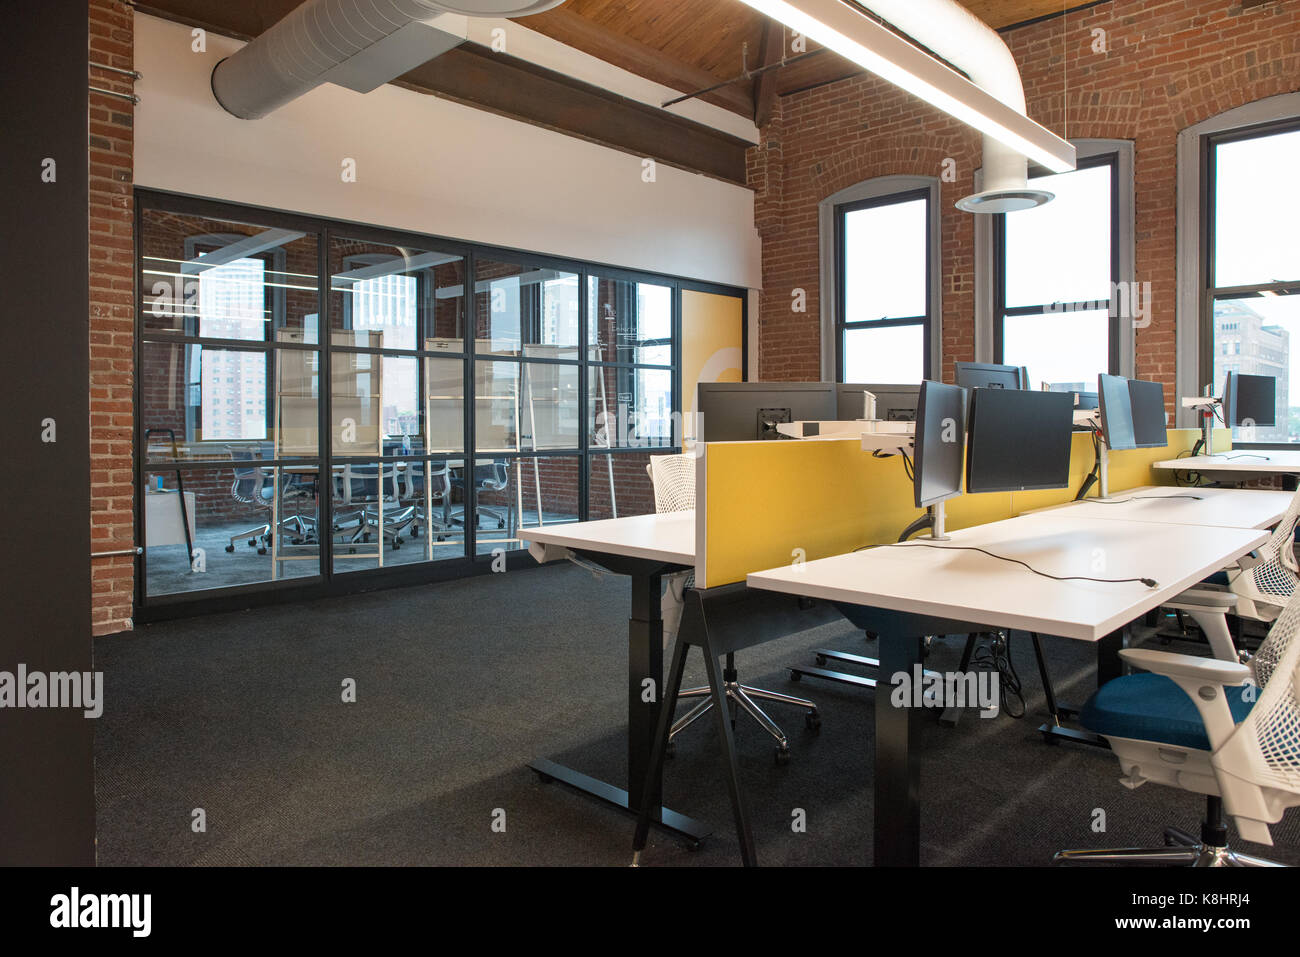 Trendy Modern Open Concept Loft Office Space With Big Windows Natural Light And A Layout To Encourage Collaboration Creativity Innovation